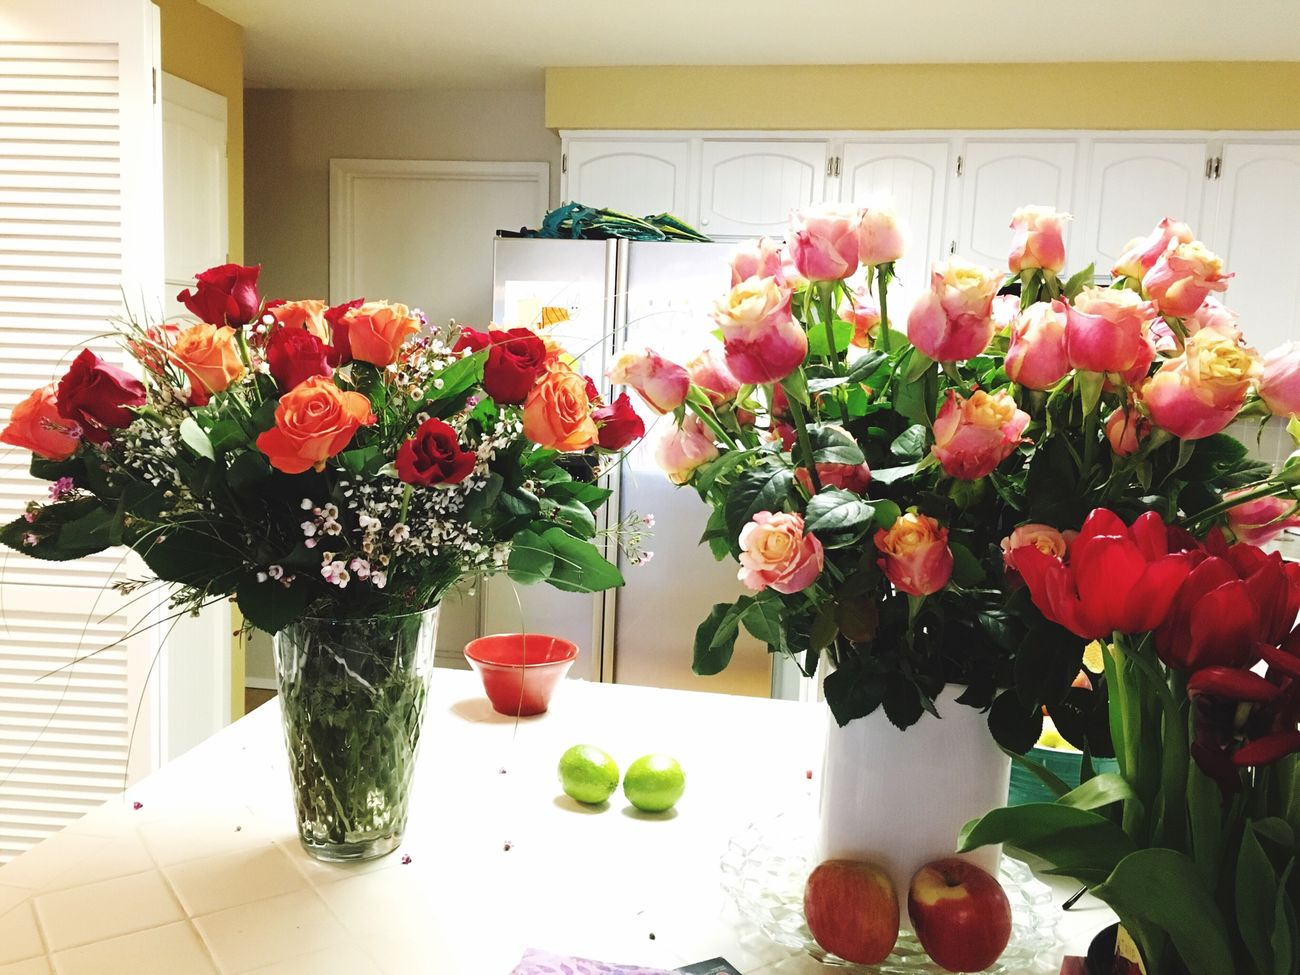 Flowers In My Kitchen Valentine's Day  Roses🌹 Bouquets